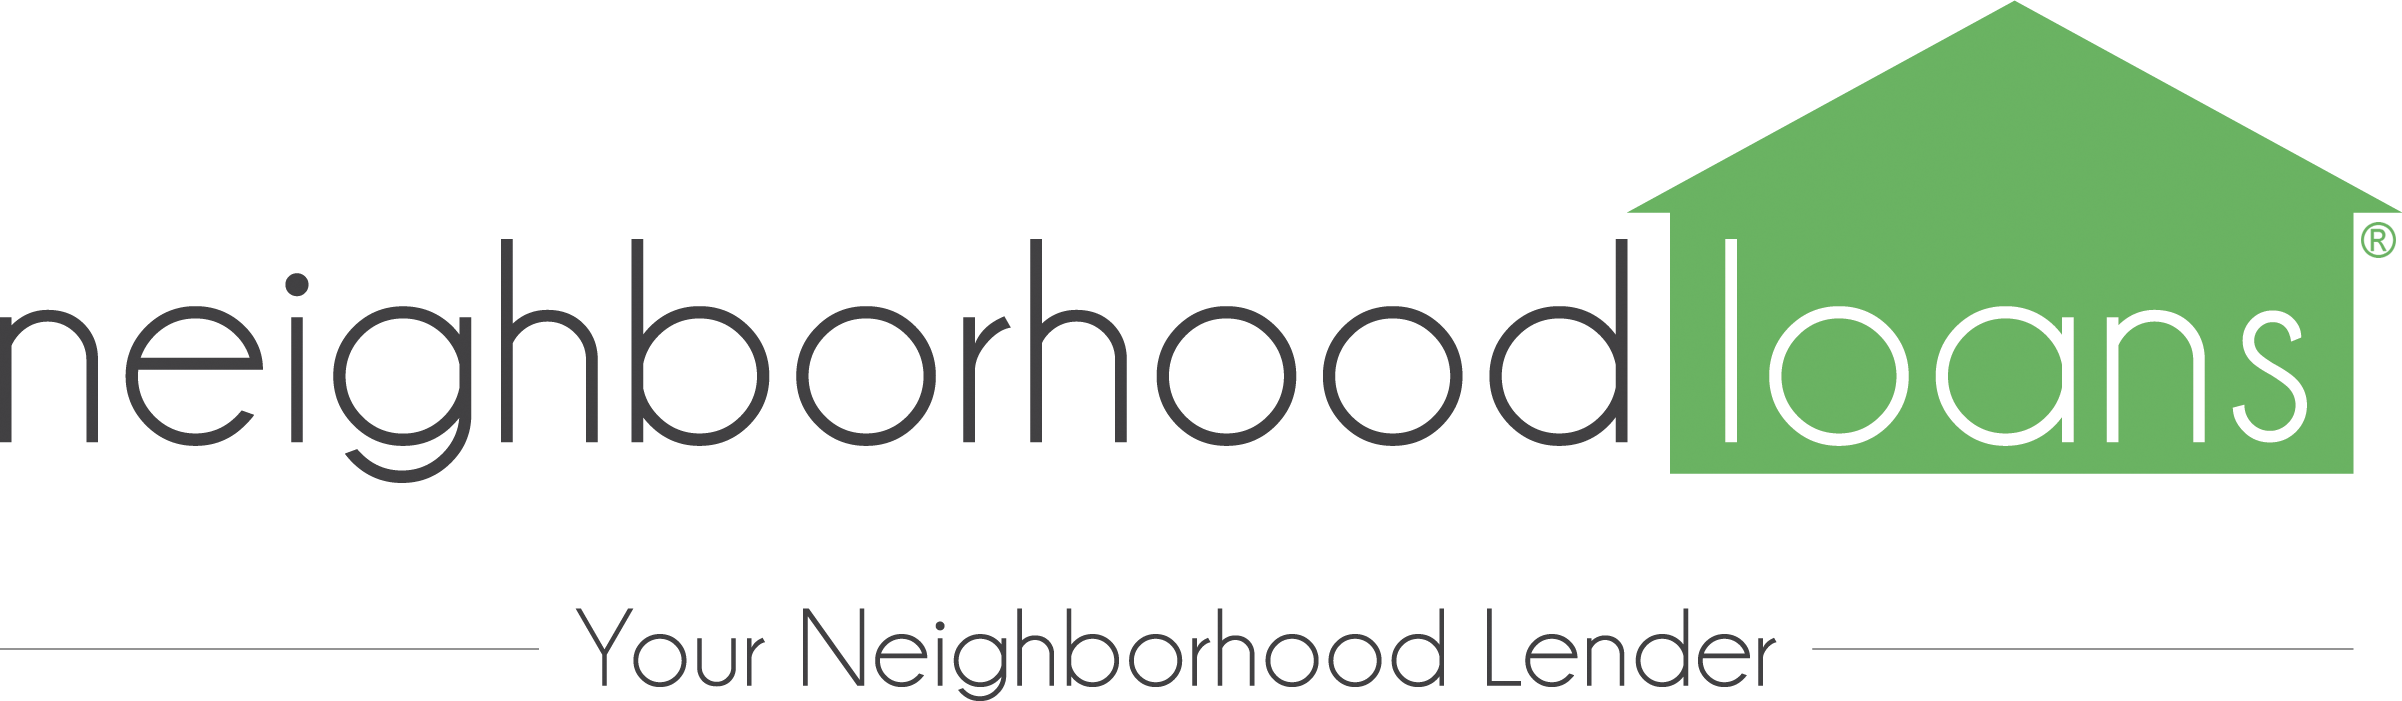 Neighborhood Loans Logo